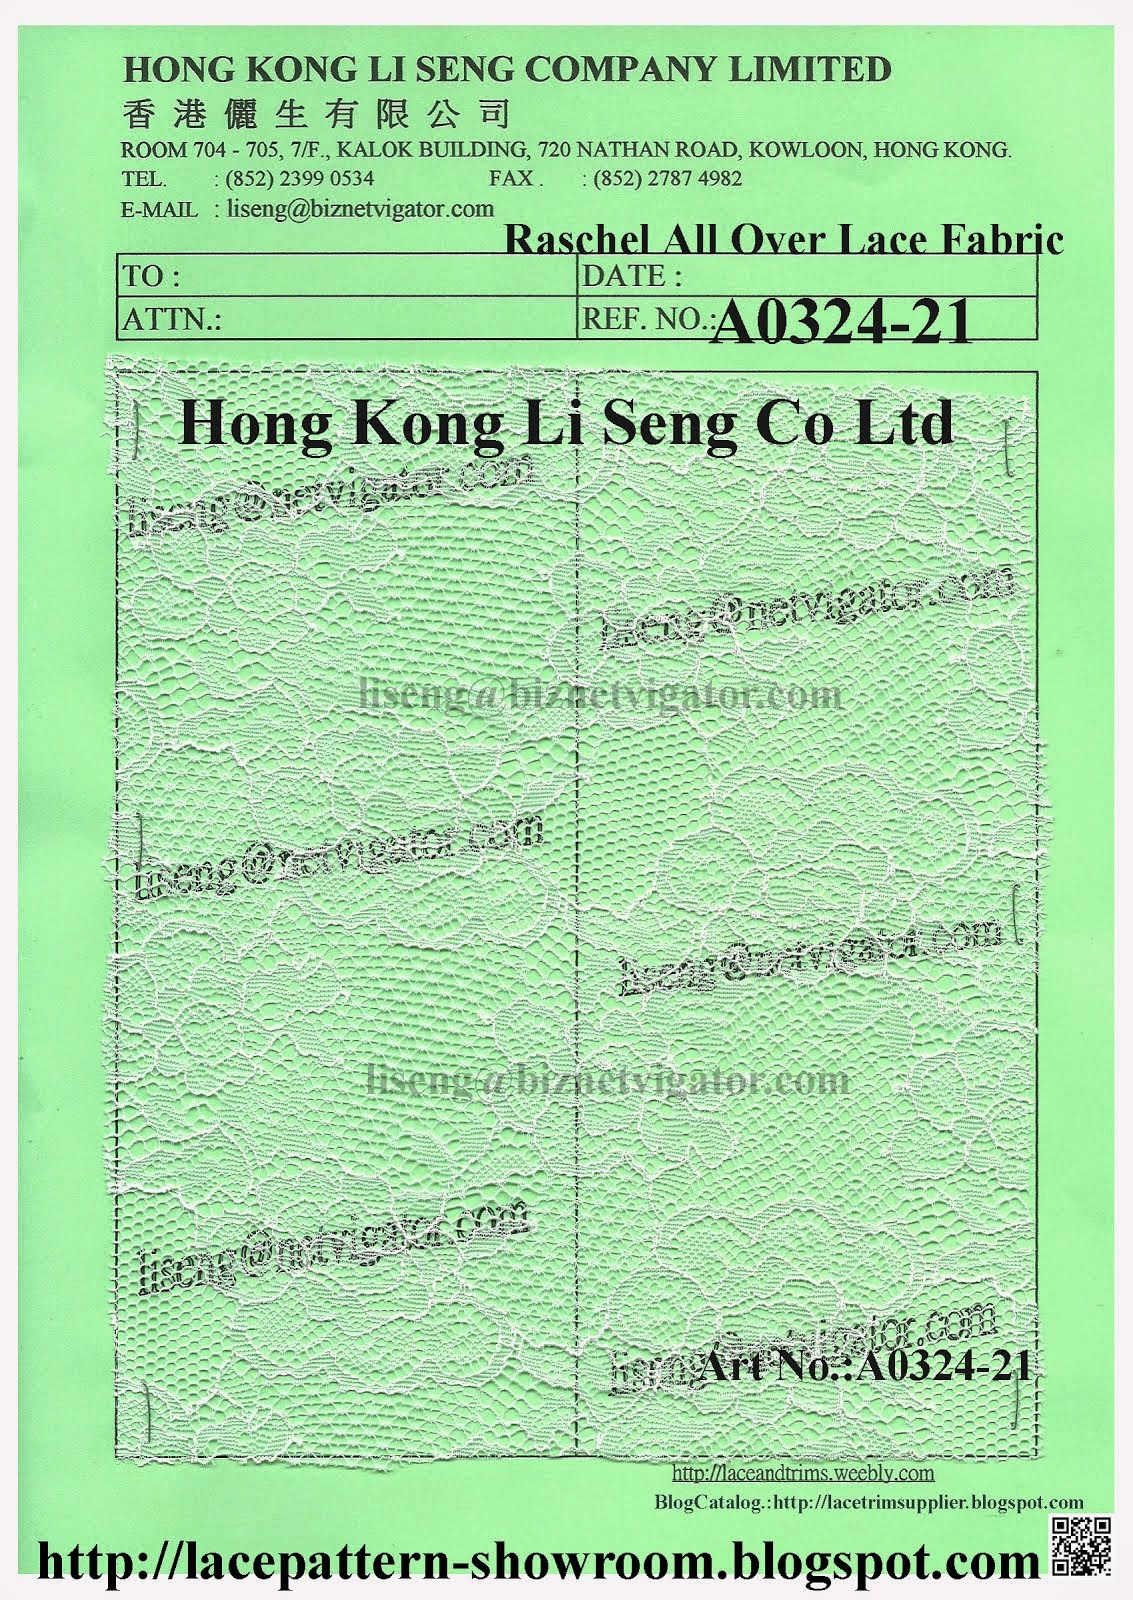 "Raschel All Over Lace Fabric Wholesaler and Supplier "" Hong Kong Li Seng Co Ltd """